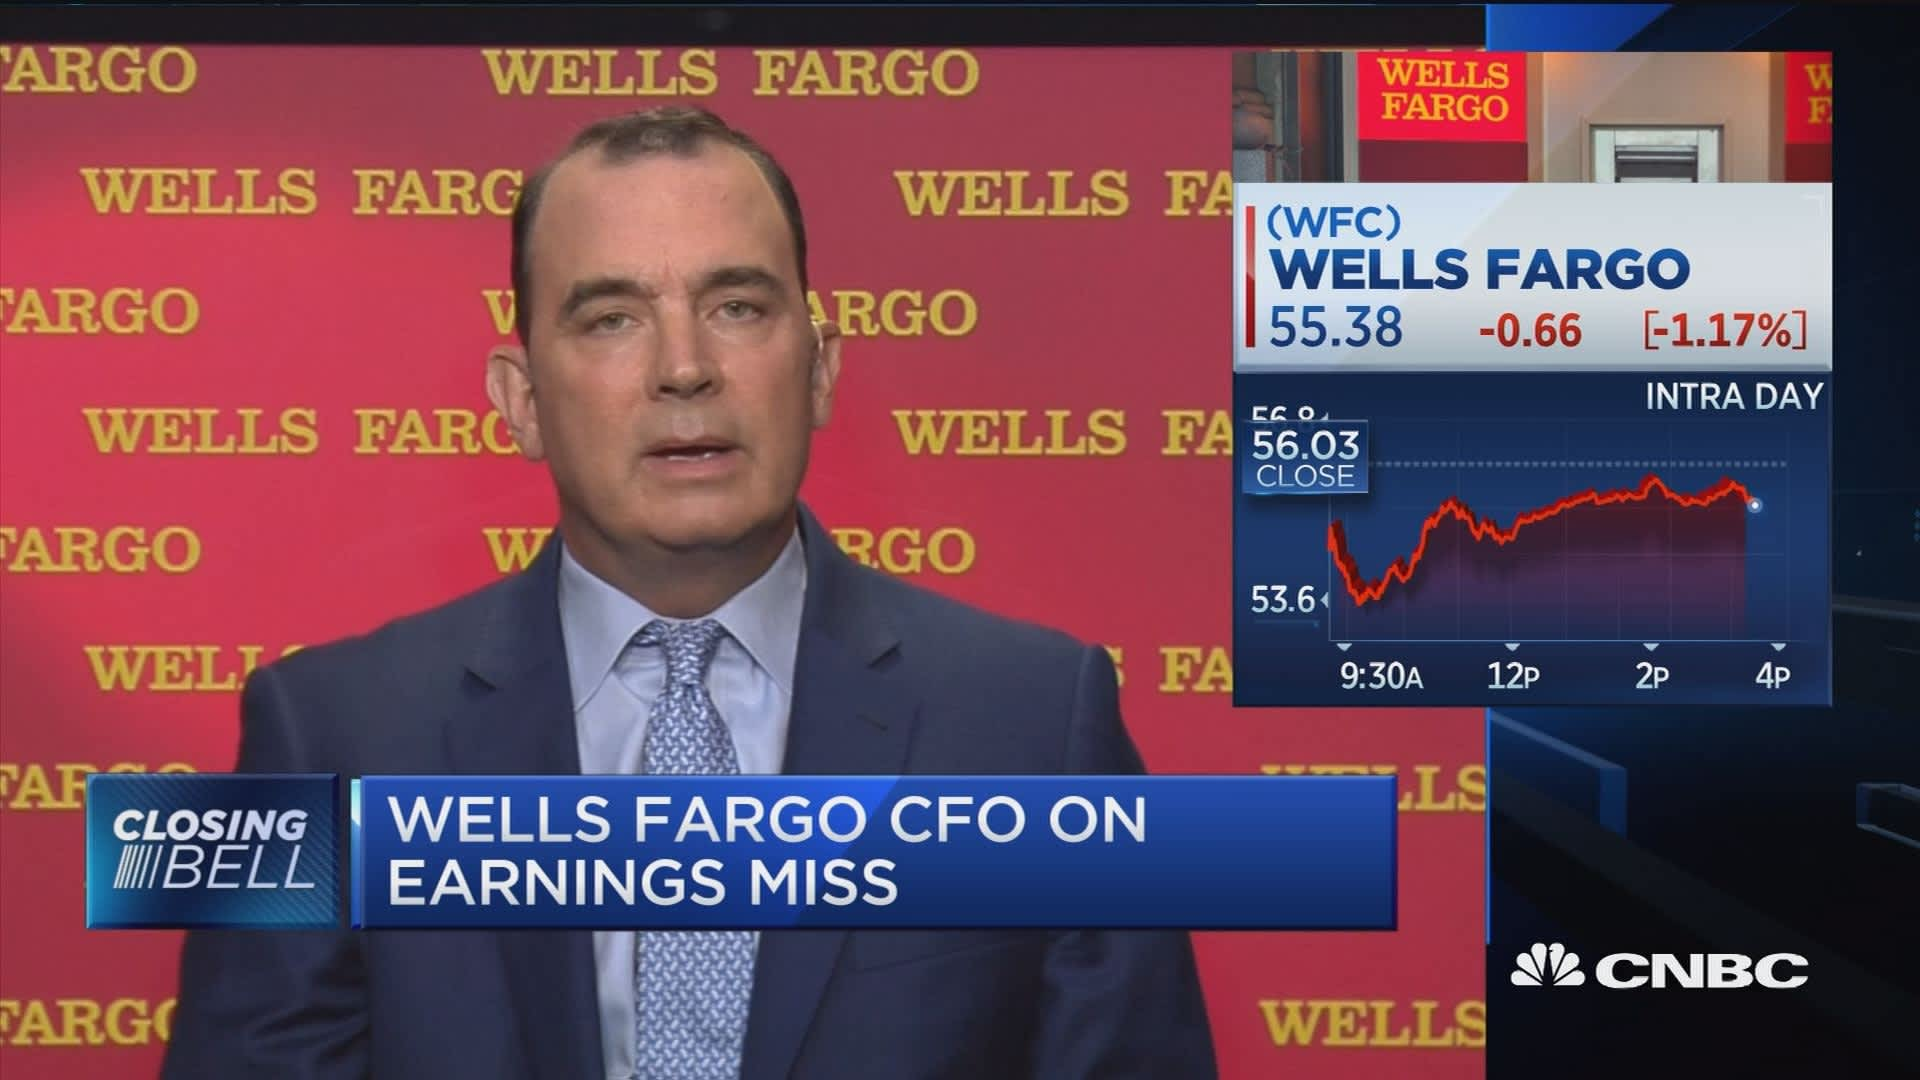 Wells Fargo Options (WFC): Unusual Trading Activity : Options Trading Research